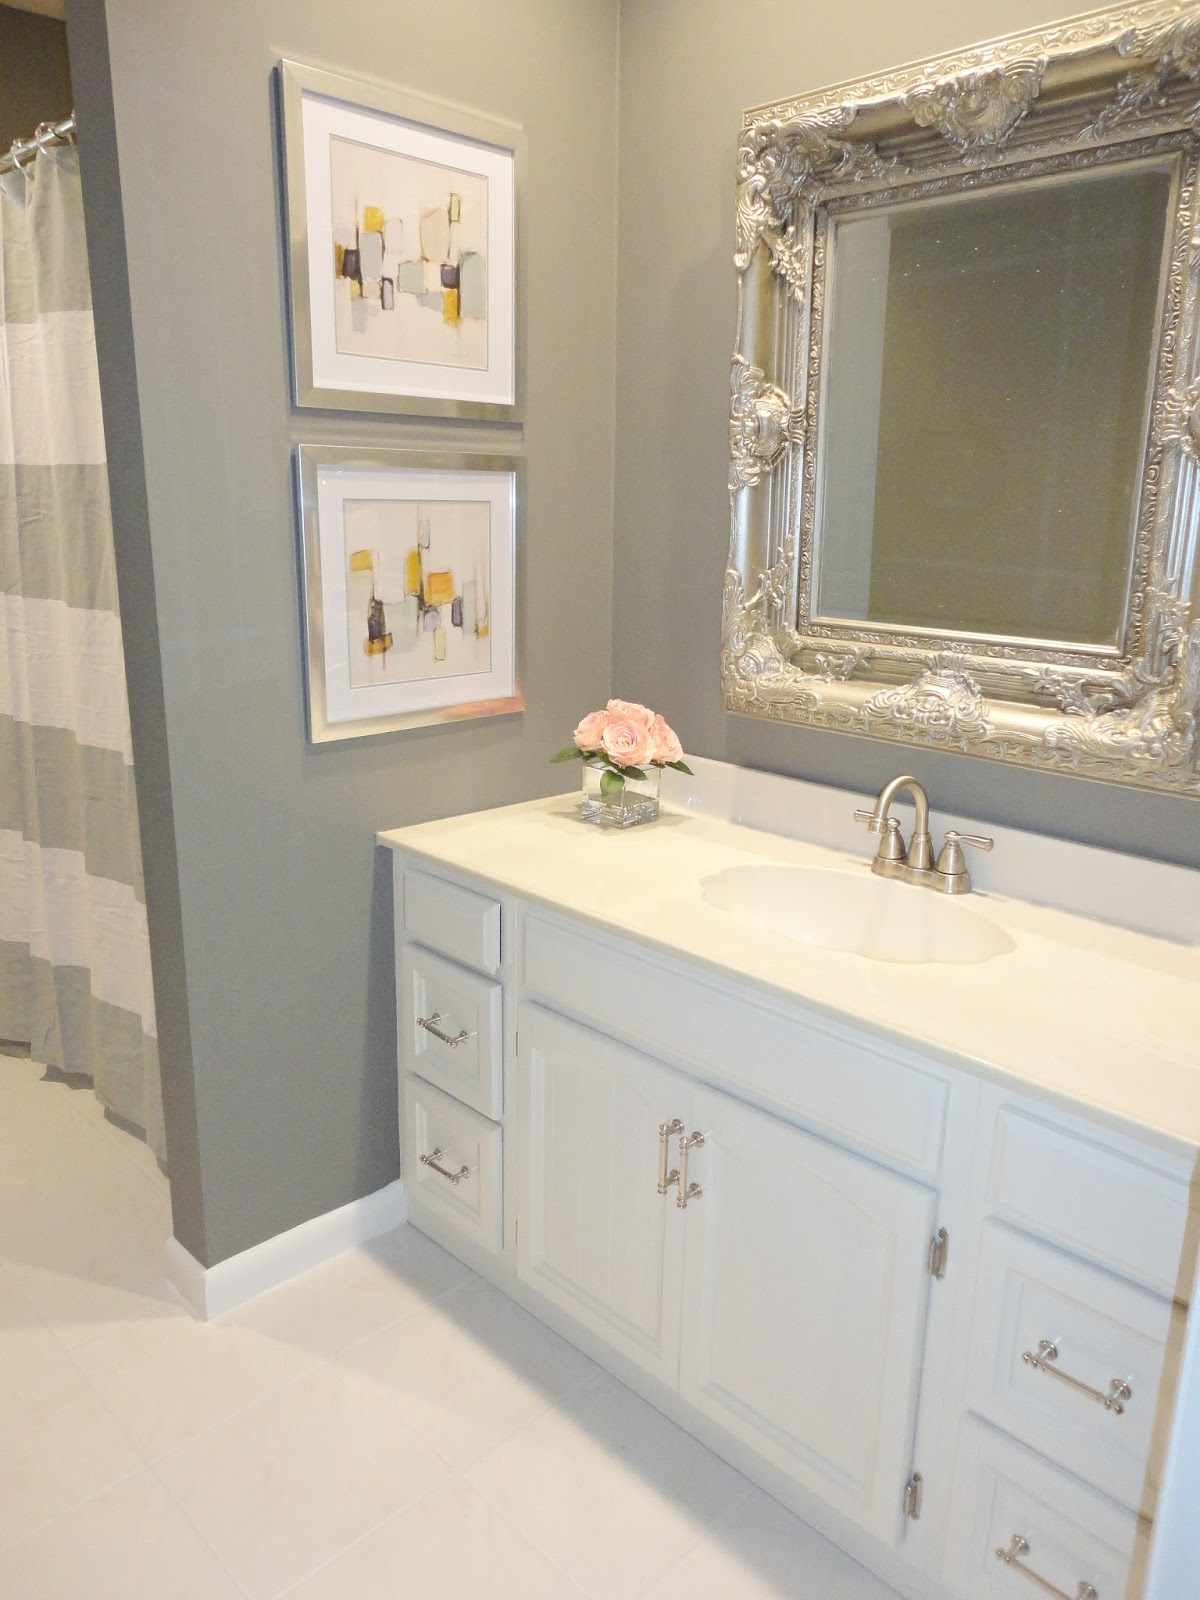 Livelovediy diy bathroom remodel on a budget - Inexpensive bathroom remodel pictures ...